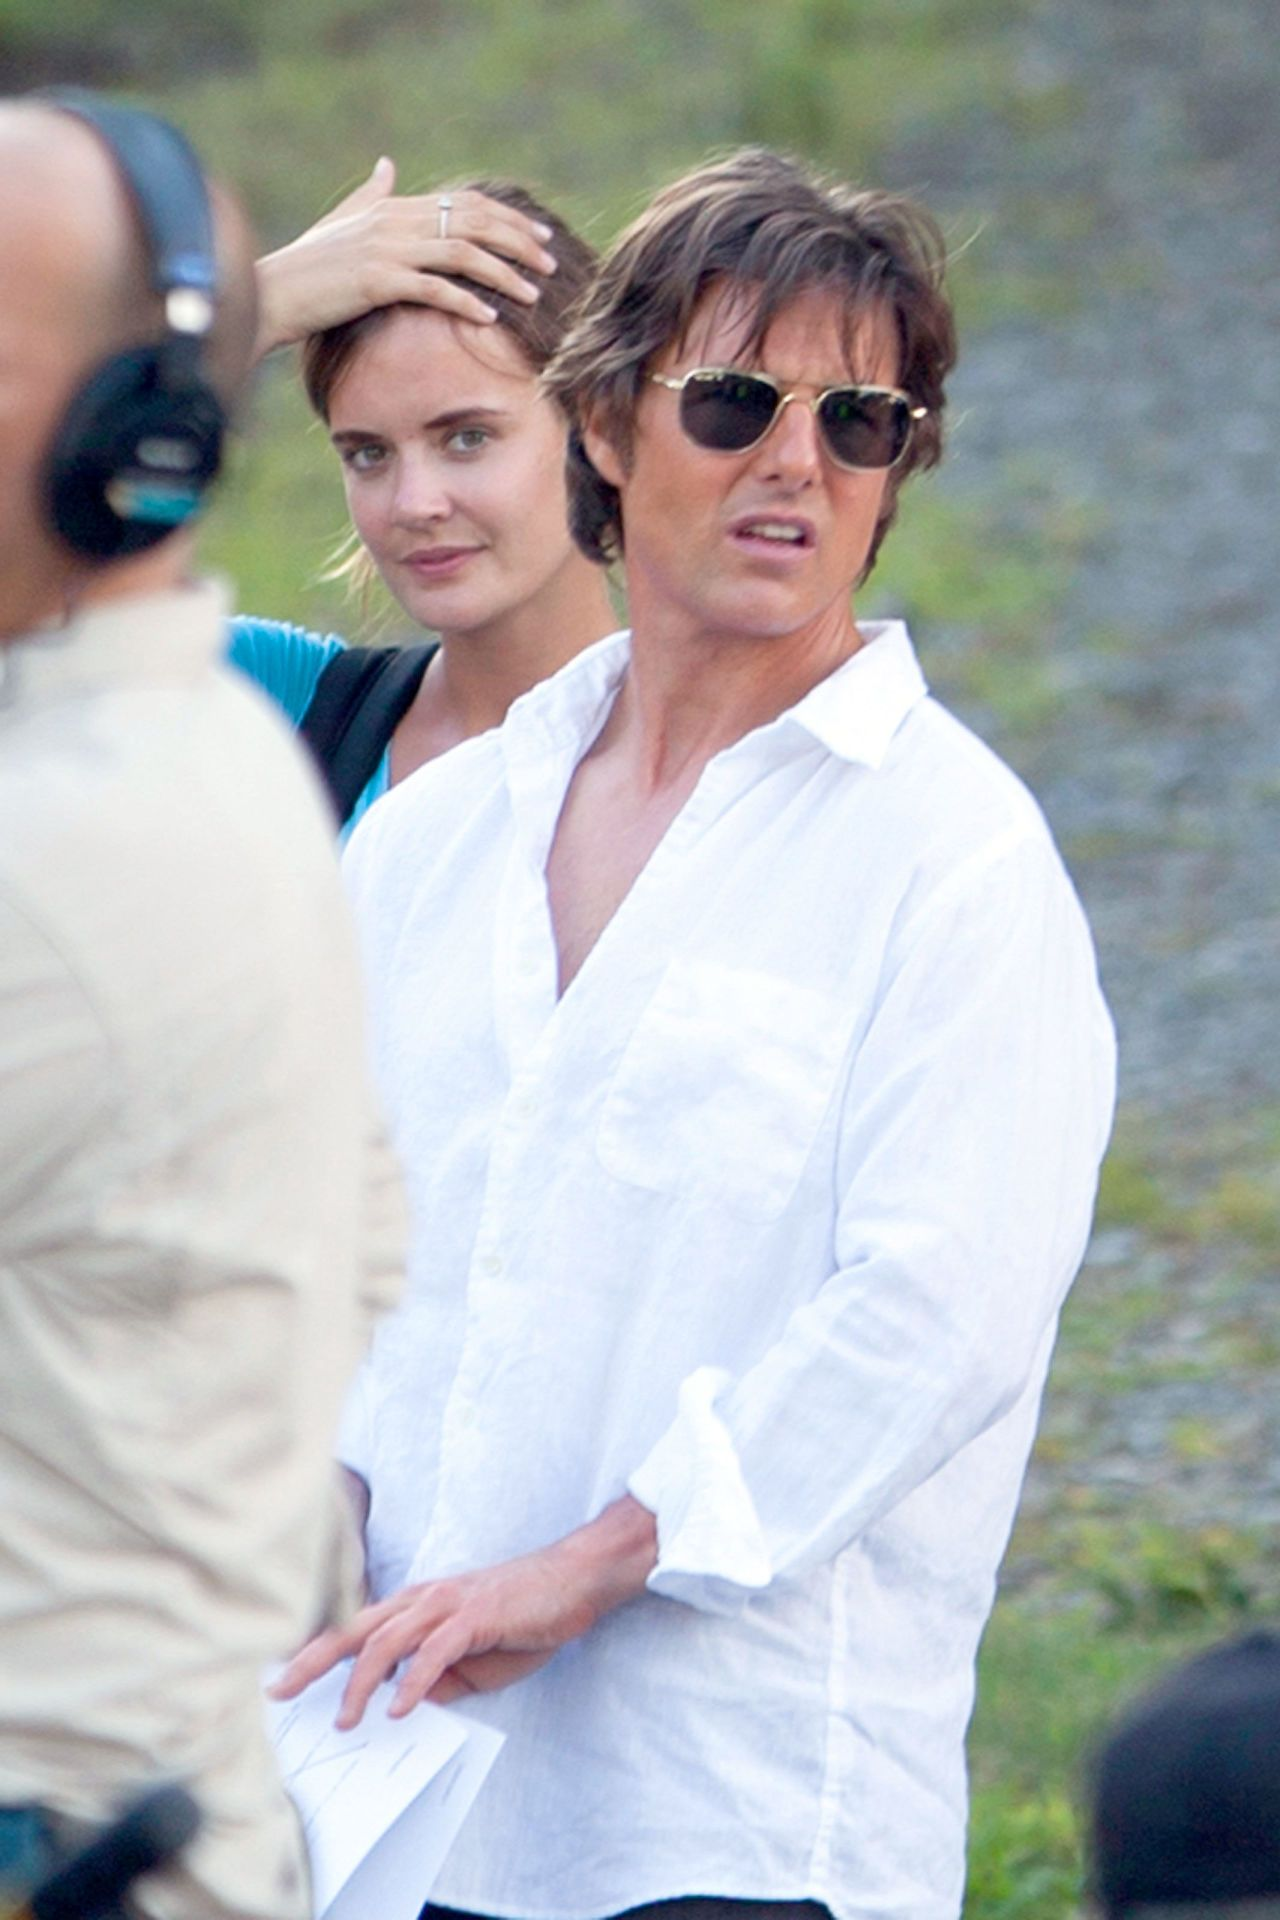 Tom Cruise And Katie Holmes InNot Splitting Up Shock nudes (51 photos), Instagram Celebrity fotos